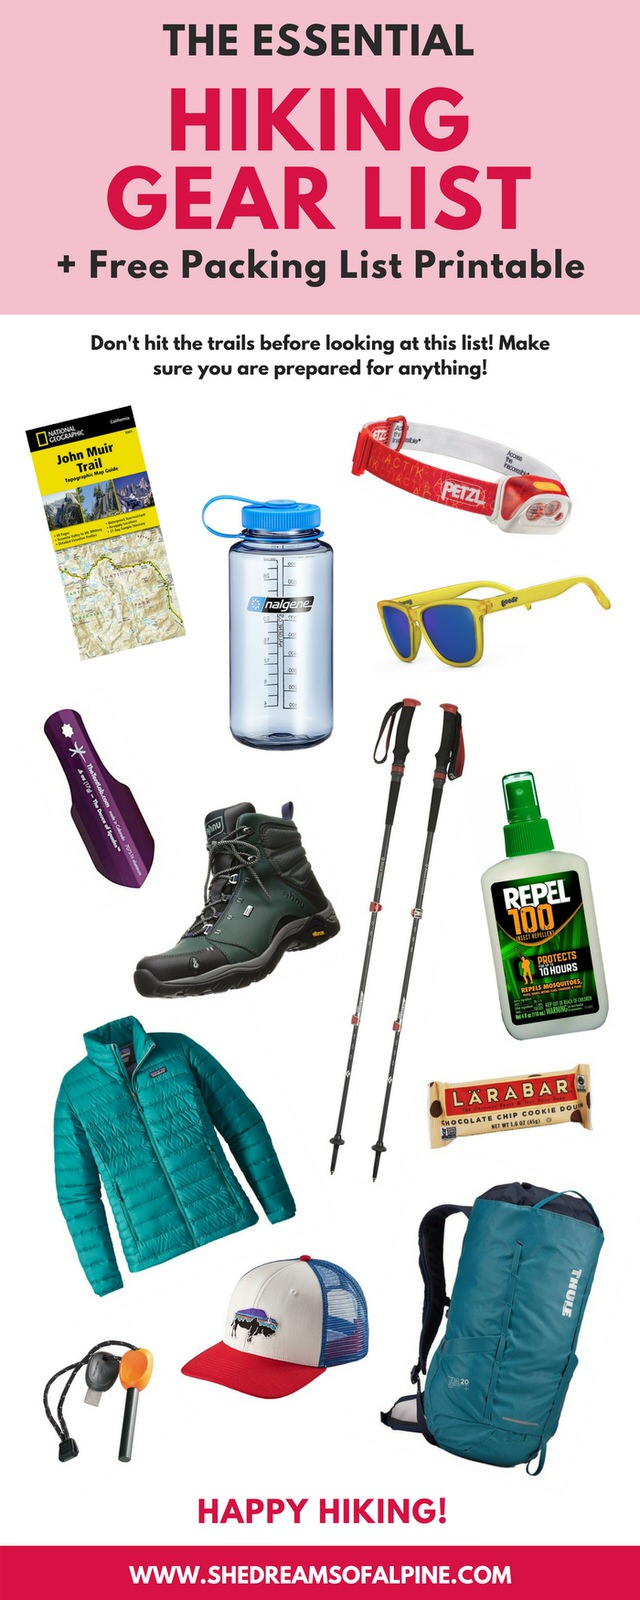 The Essential Hiking Gear List for 2019 (PLUS Hiking Packing List Printable)